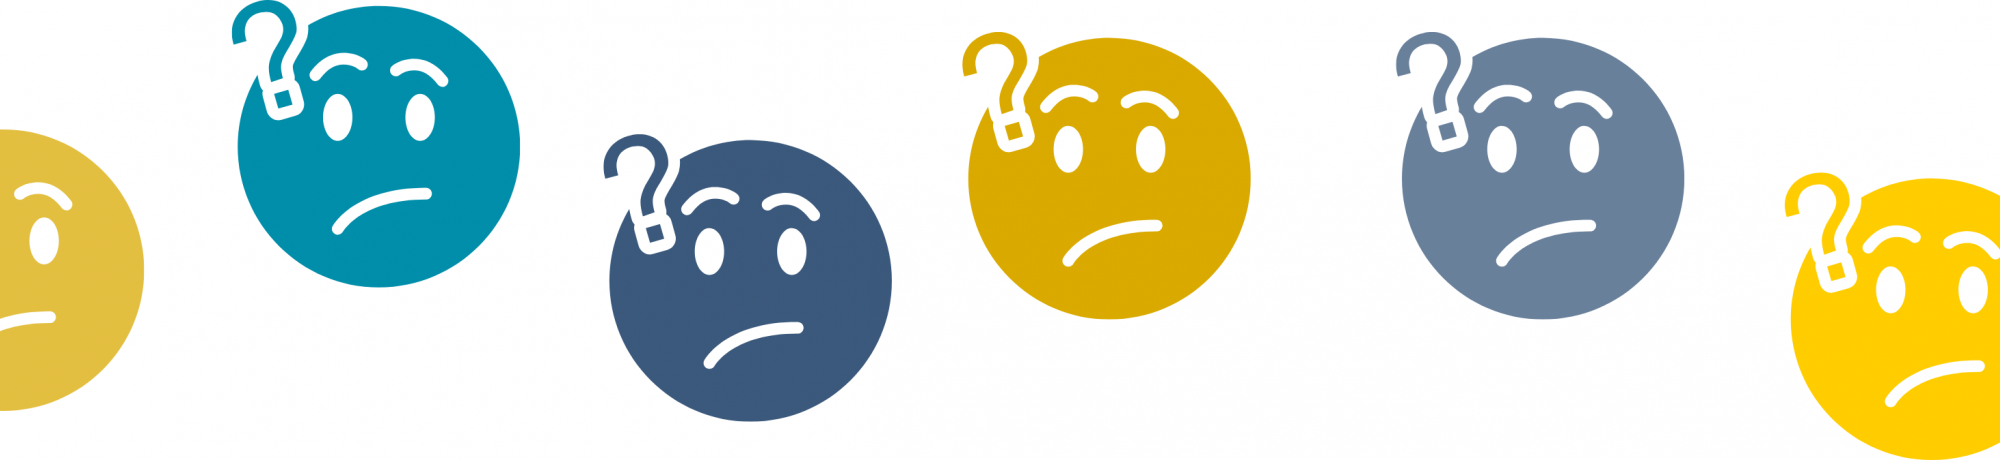 a line of face icons with question marks on their heads